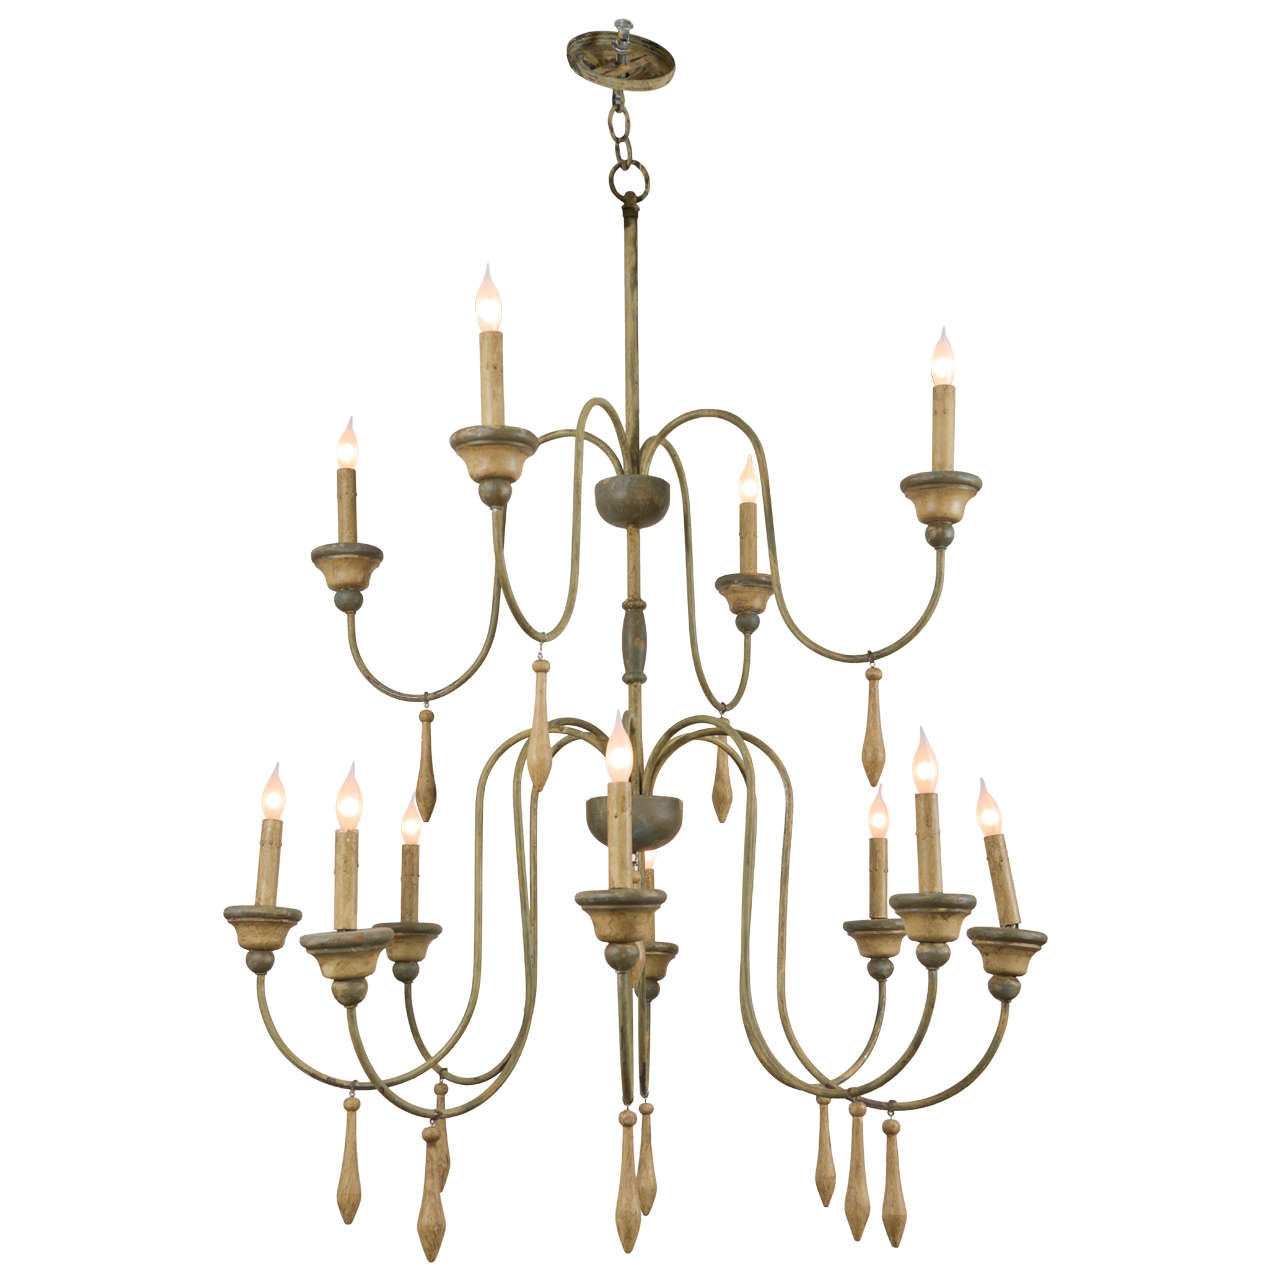 The Italian Chandelier Intended For Vintage Italian Chandeliers (#11 of 12)